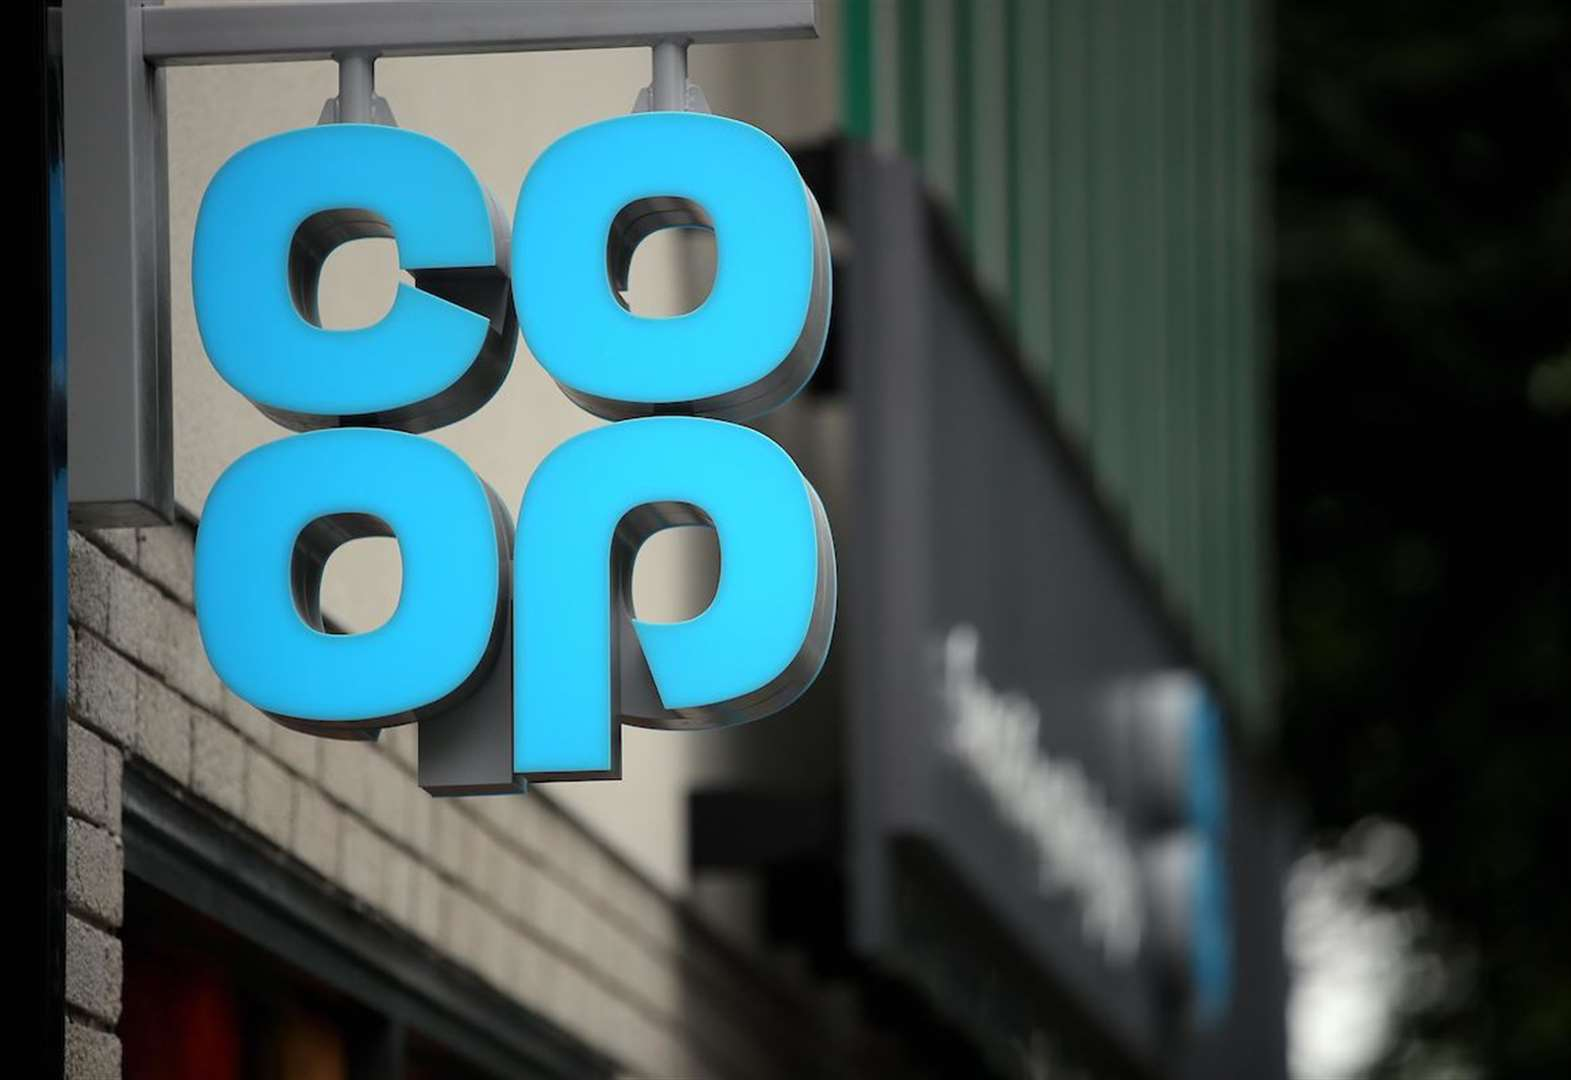 Co-op bosses hope to open new £650,000 Invergordon store next year